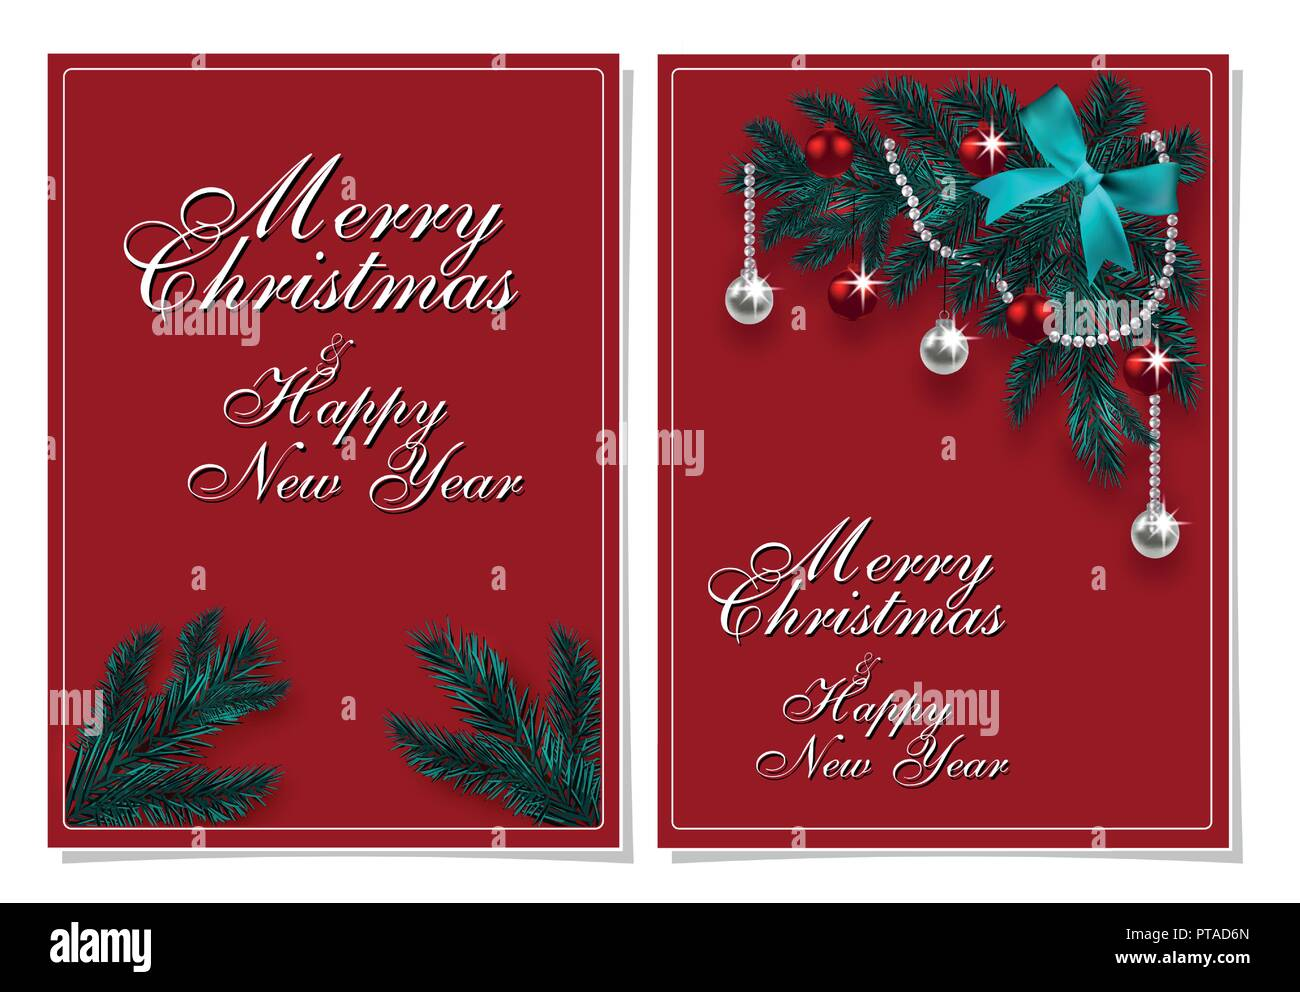 Merry Christmas And Happy New Year Greeting Card With Chrirstmas